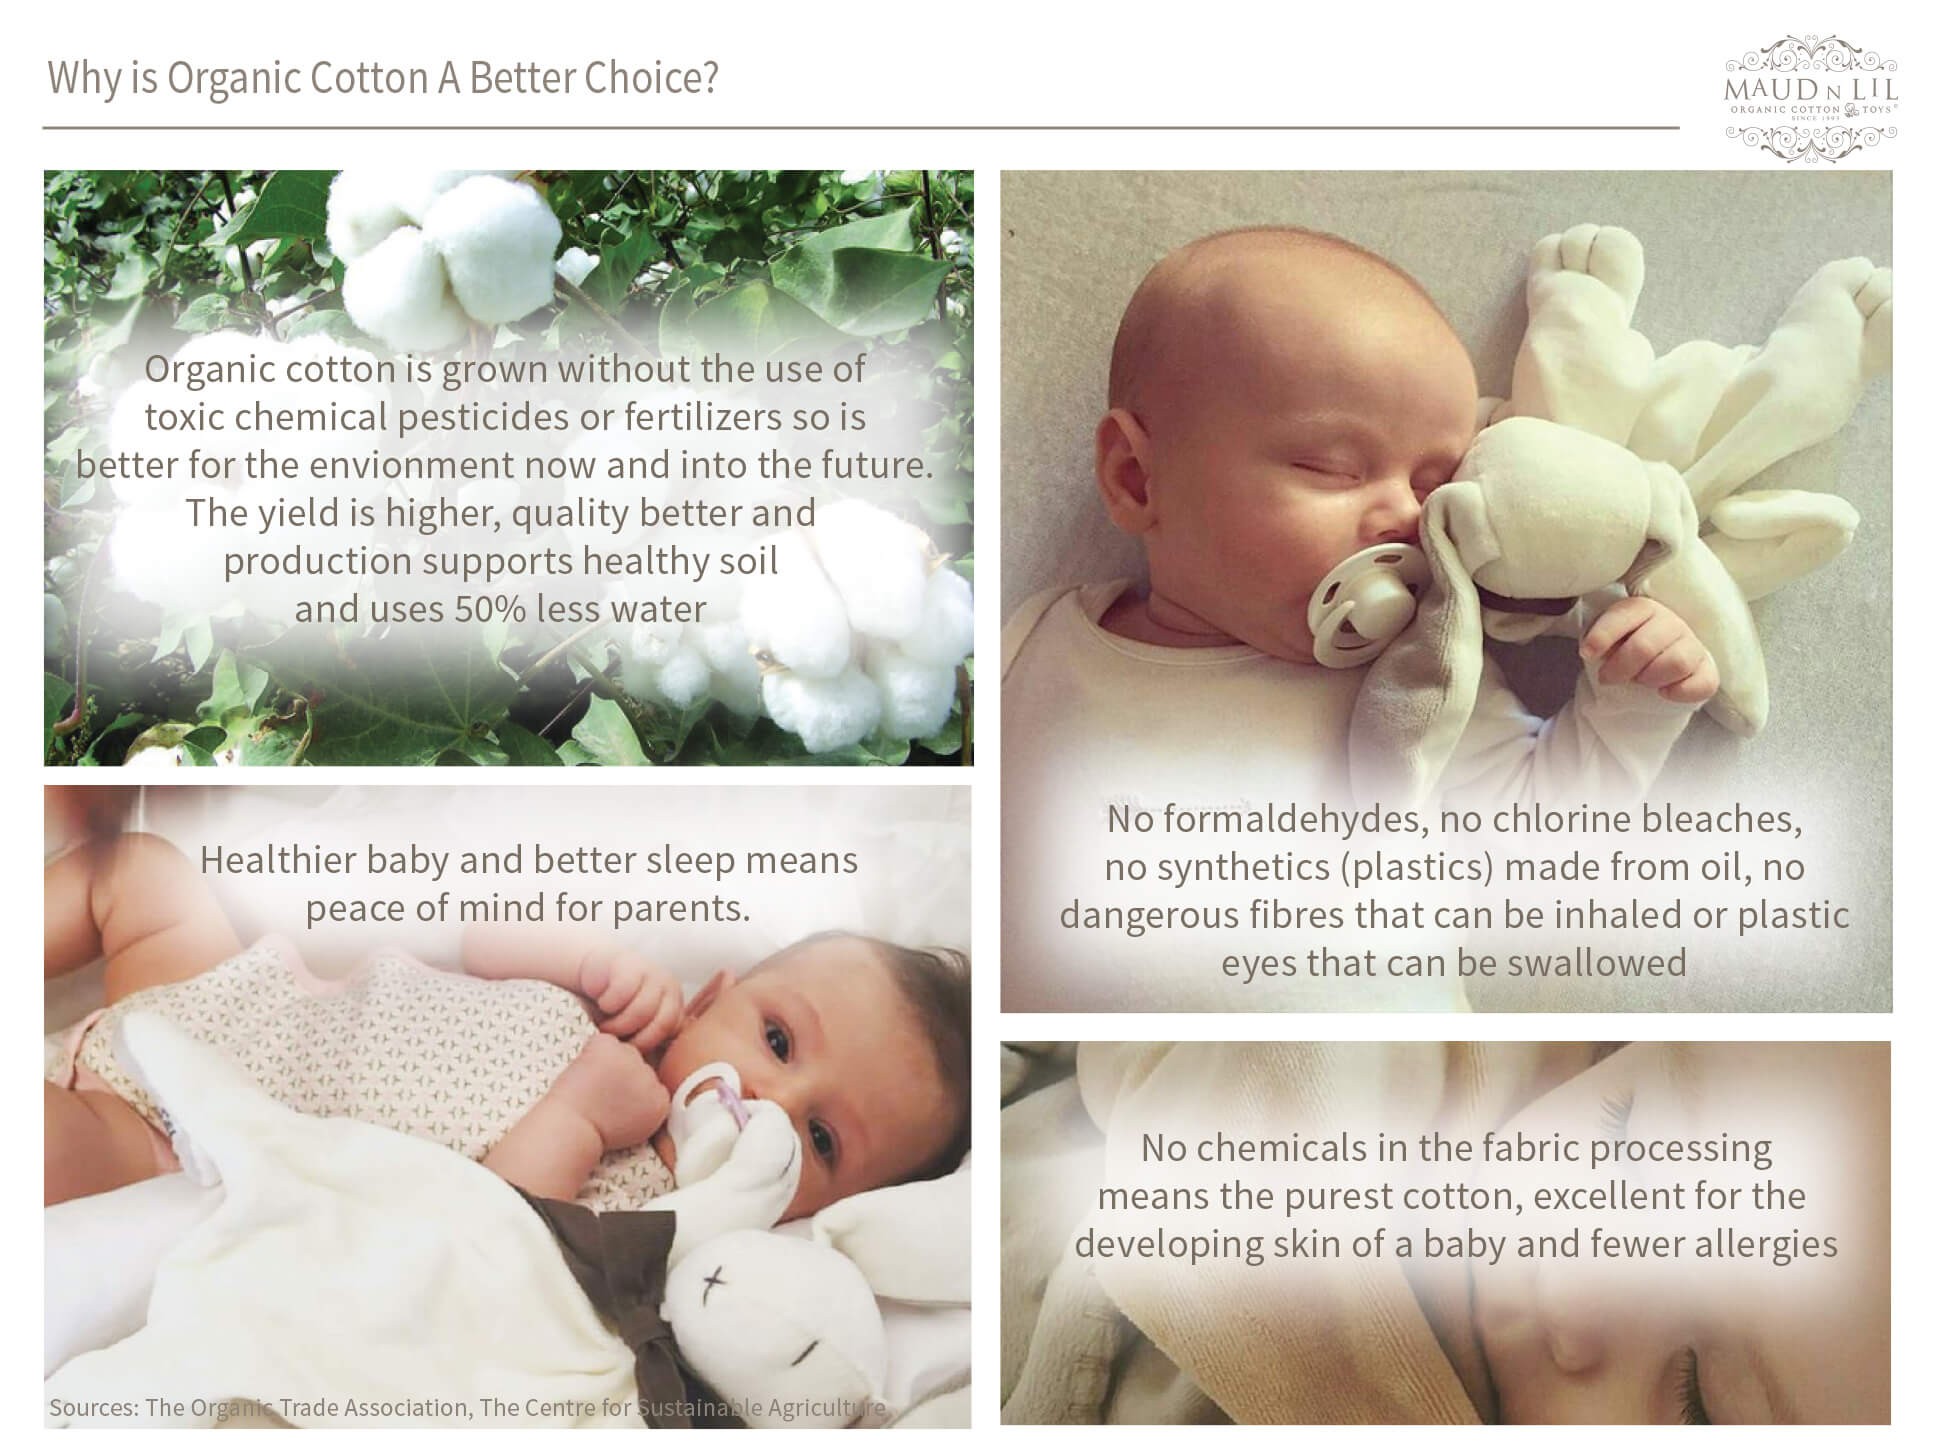 Why Is Organic Cotton A Better Choice